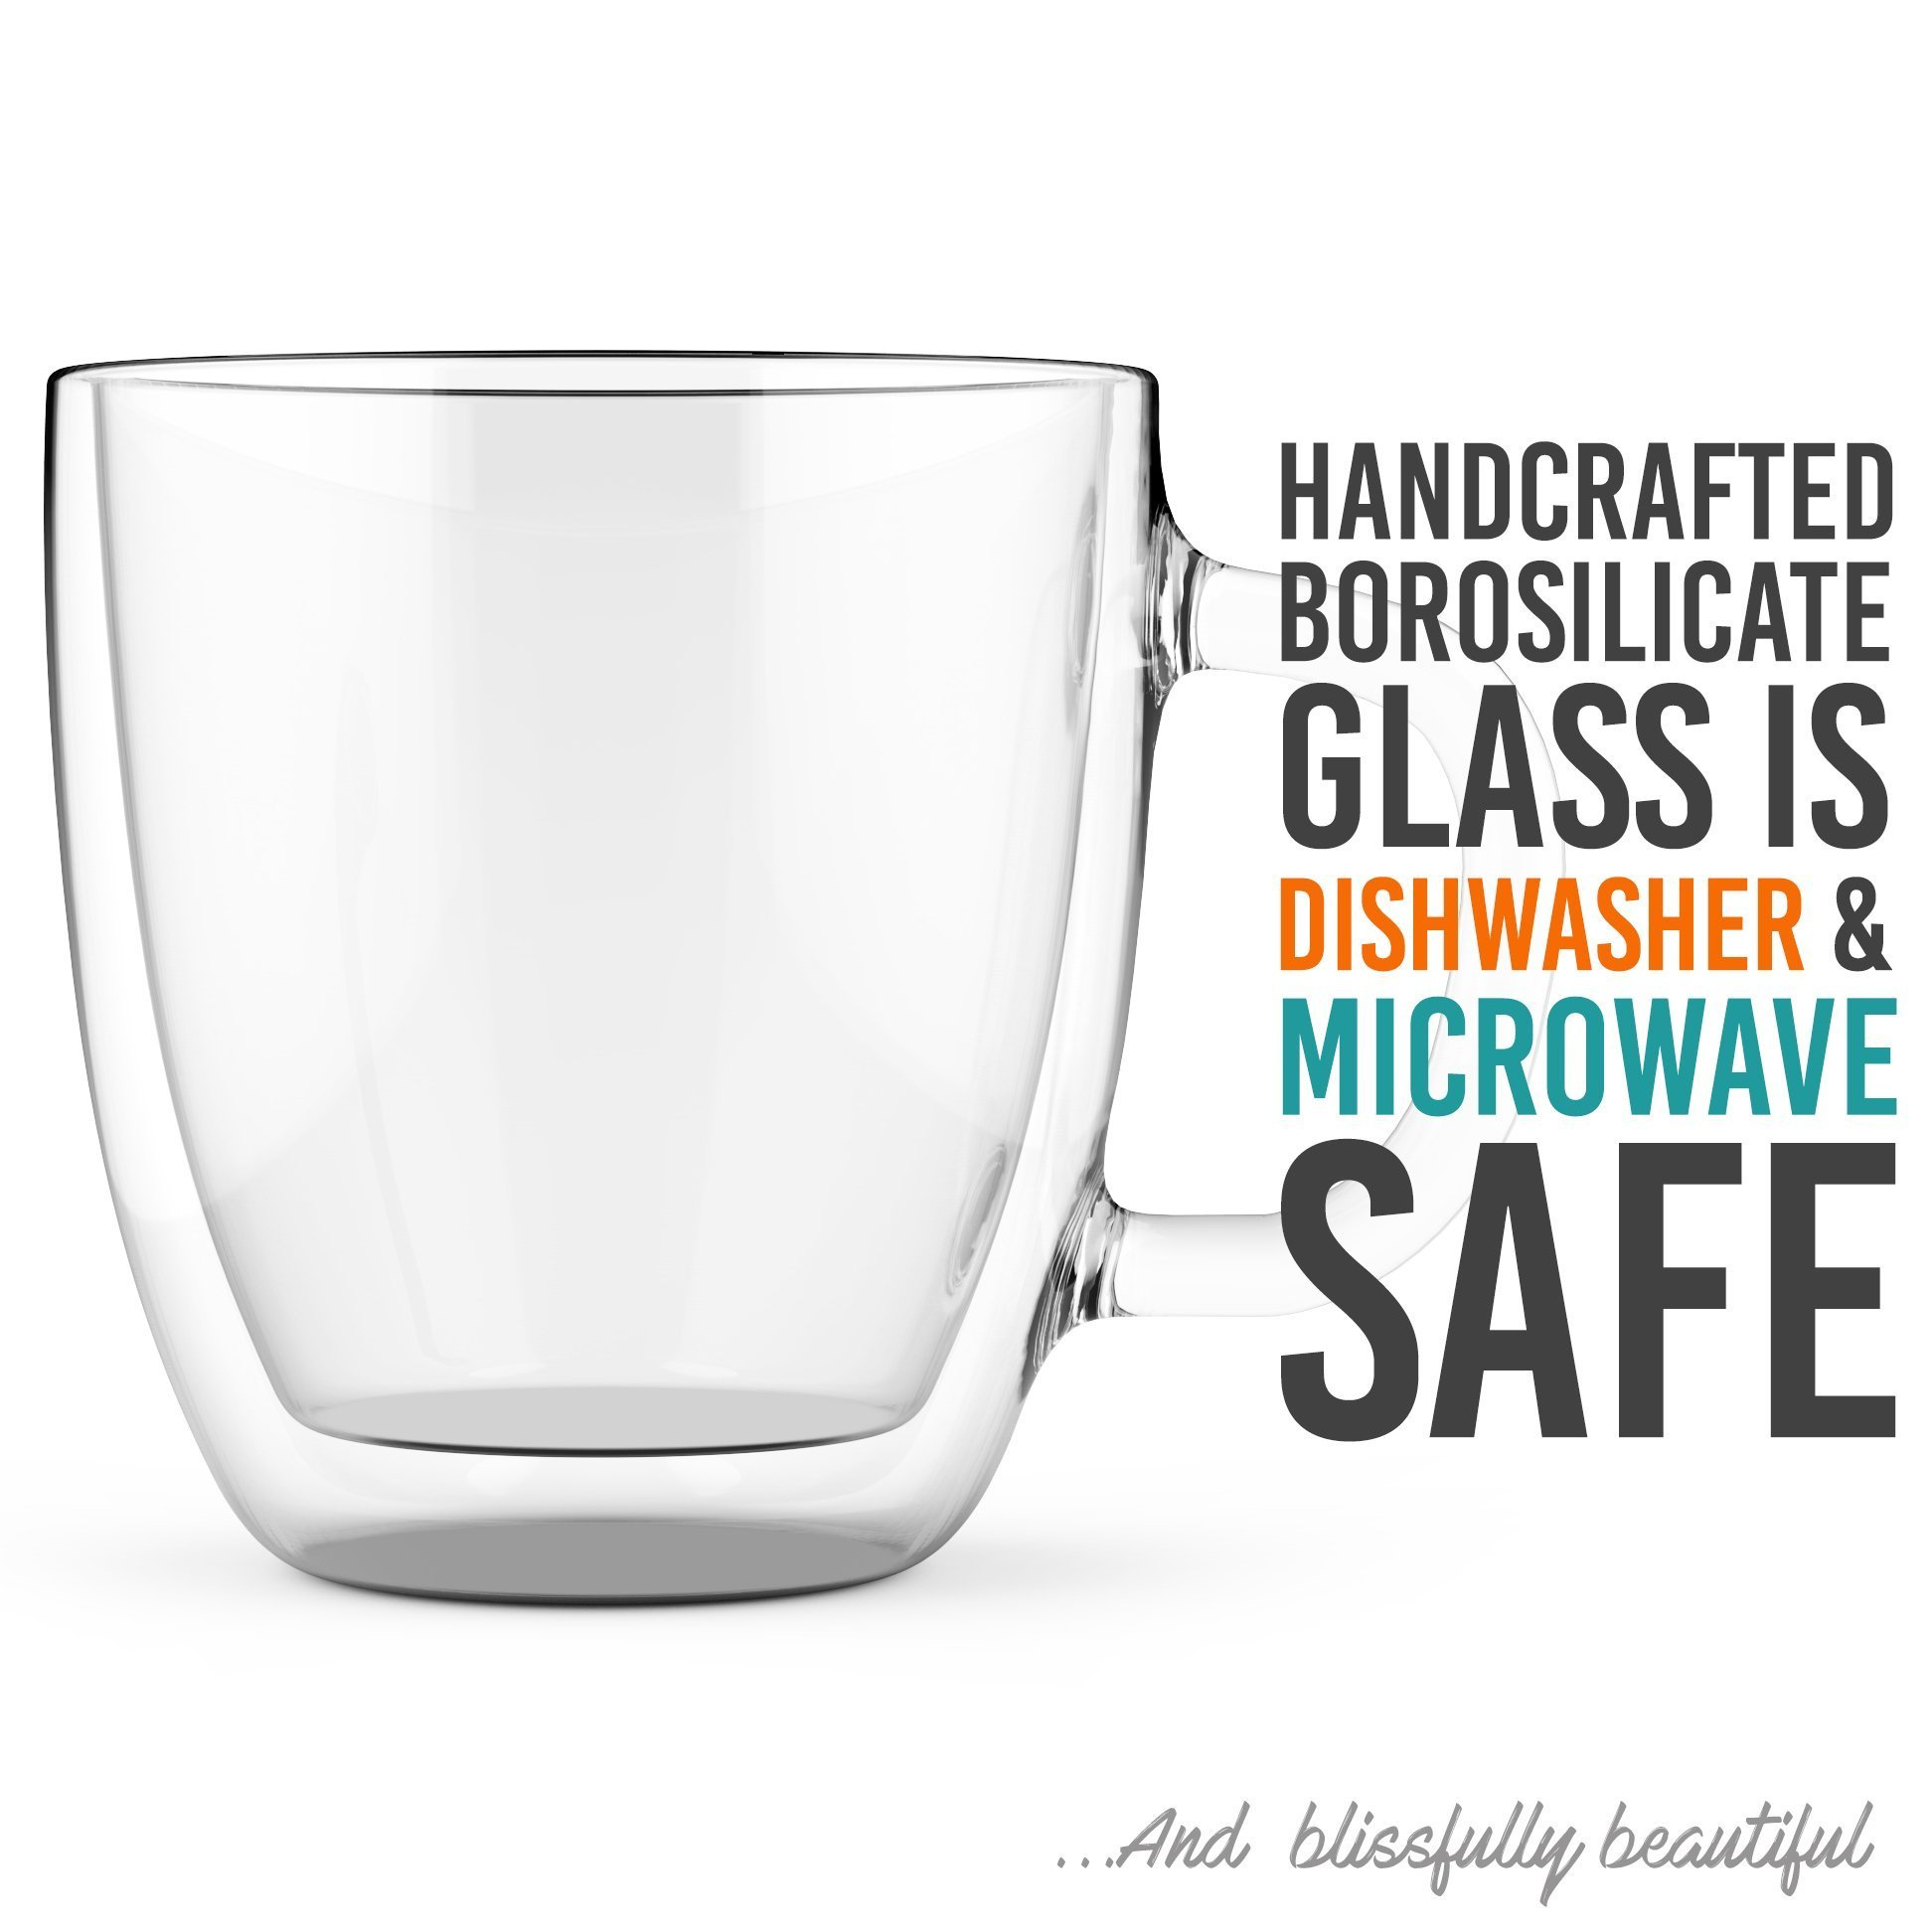 Large Coffee Mugs, Double Wall Glass Set of 2, 16 oz - Dishwasher & Microwave Safe - Clear, Unique & Insulated with Handle, By Elixir Glassware by Elixir Glassware (Image #5)